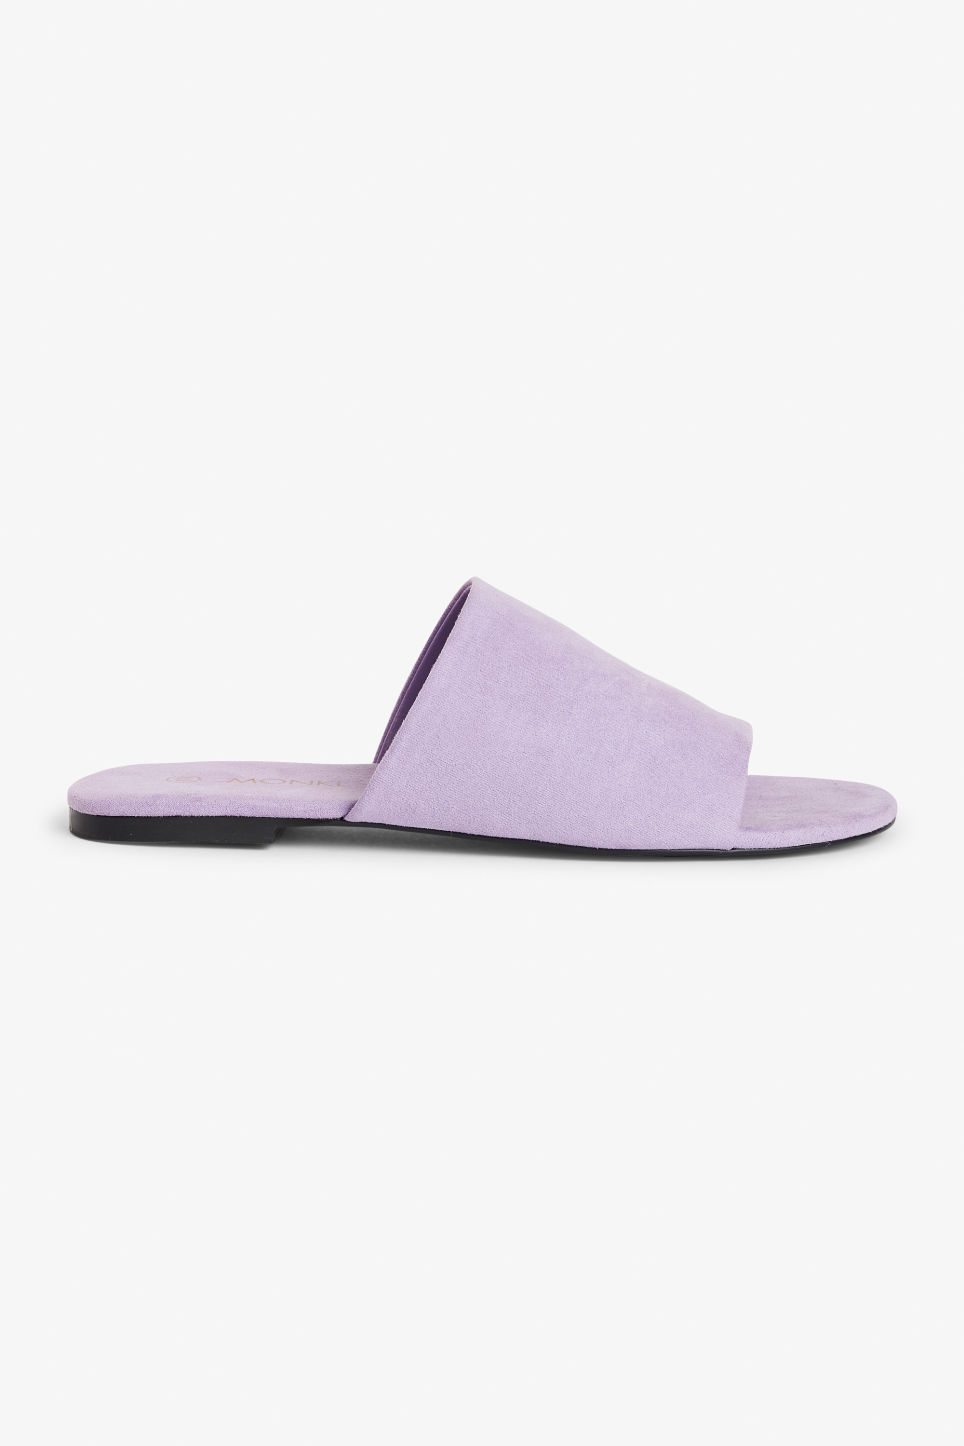 Detailed image of Monki slippers in pink